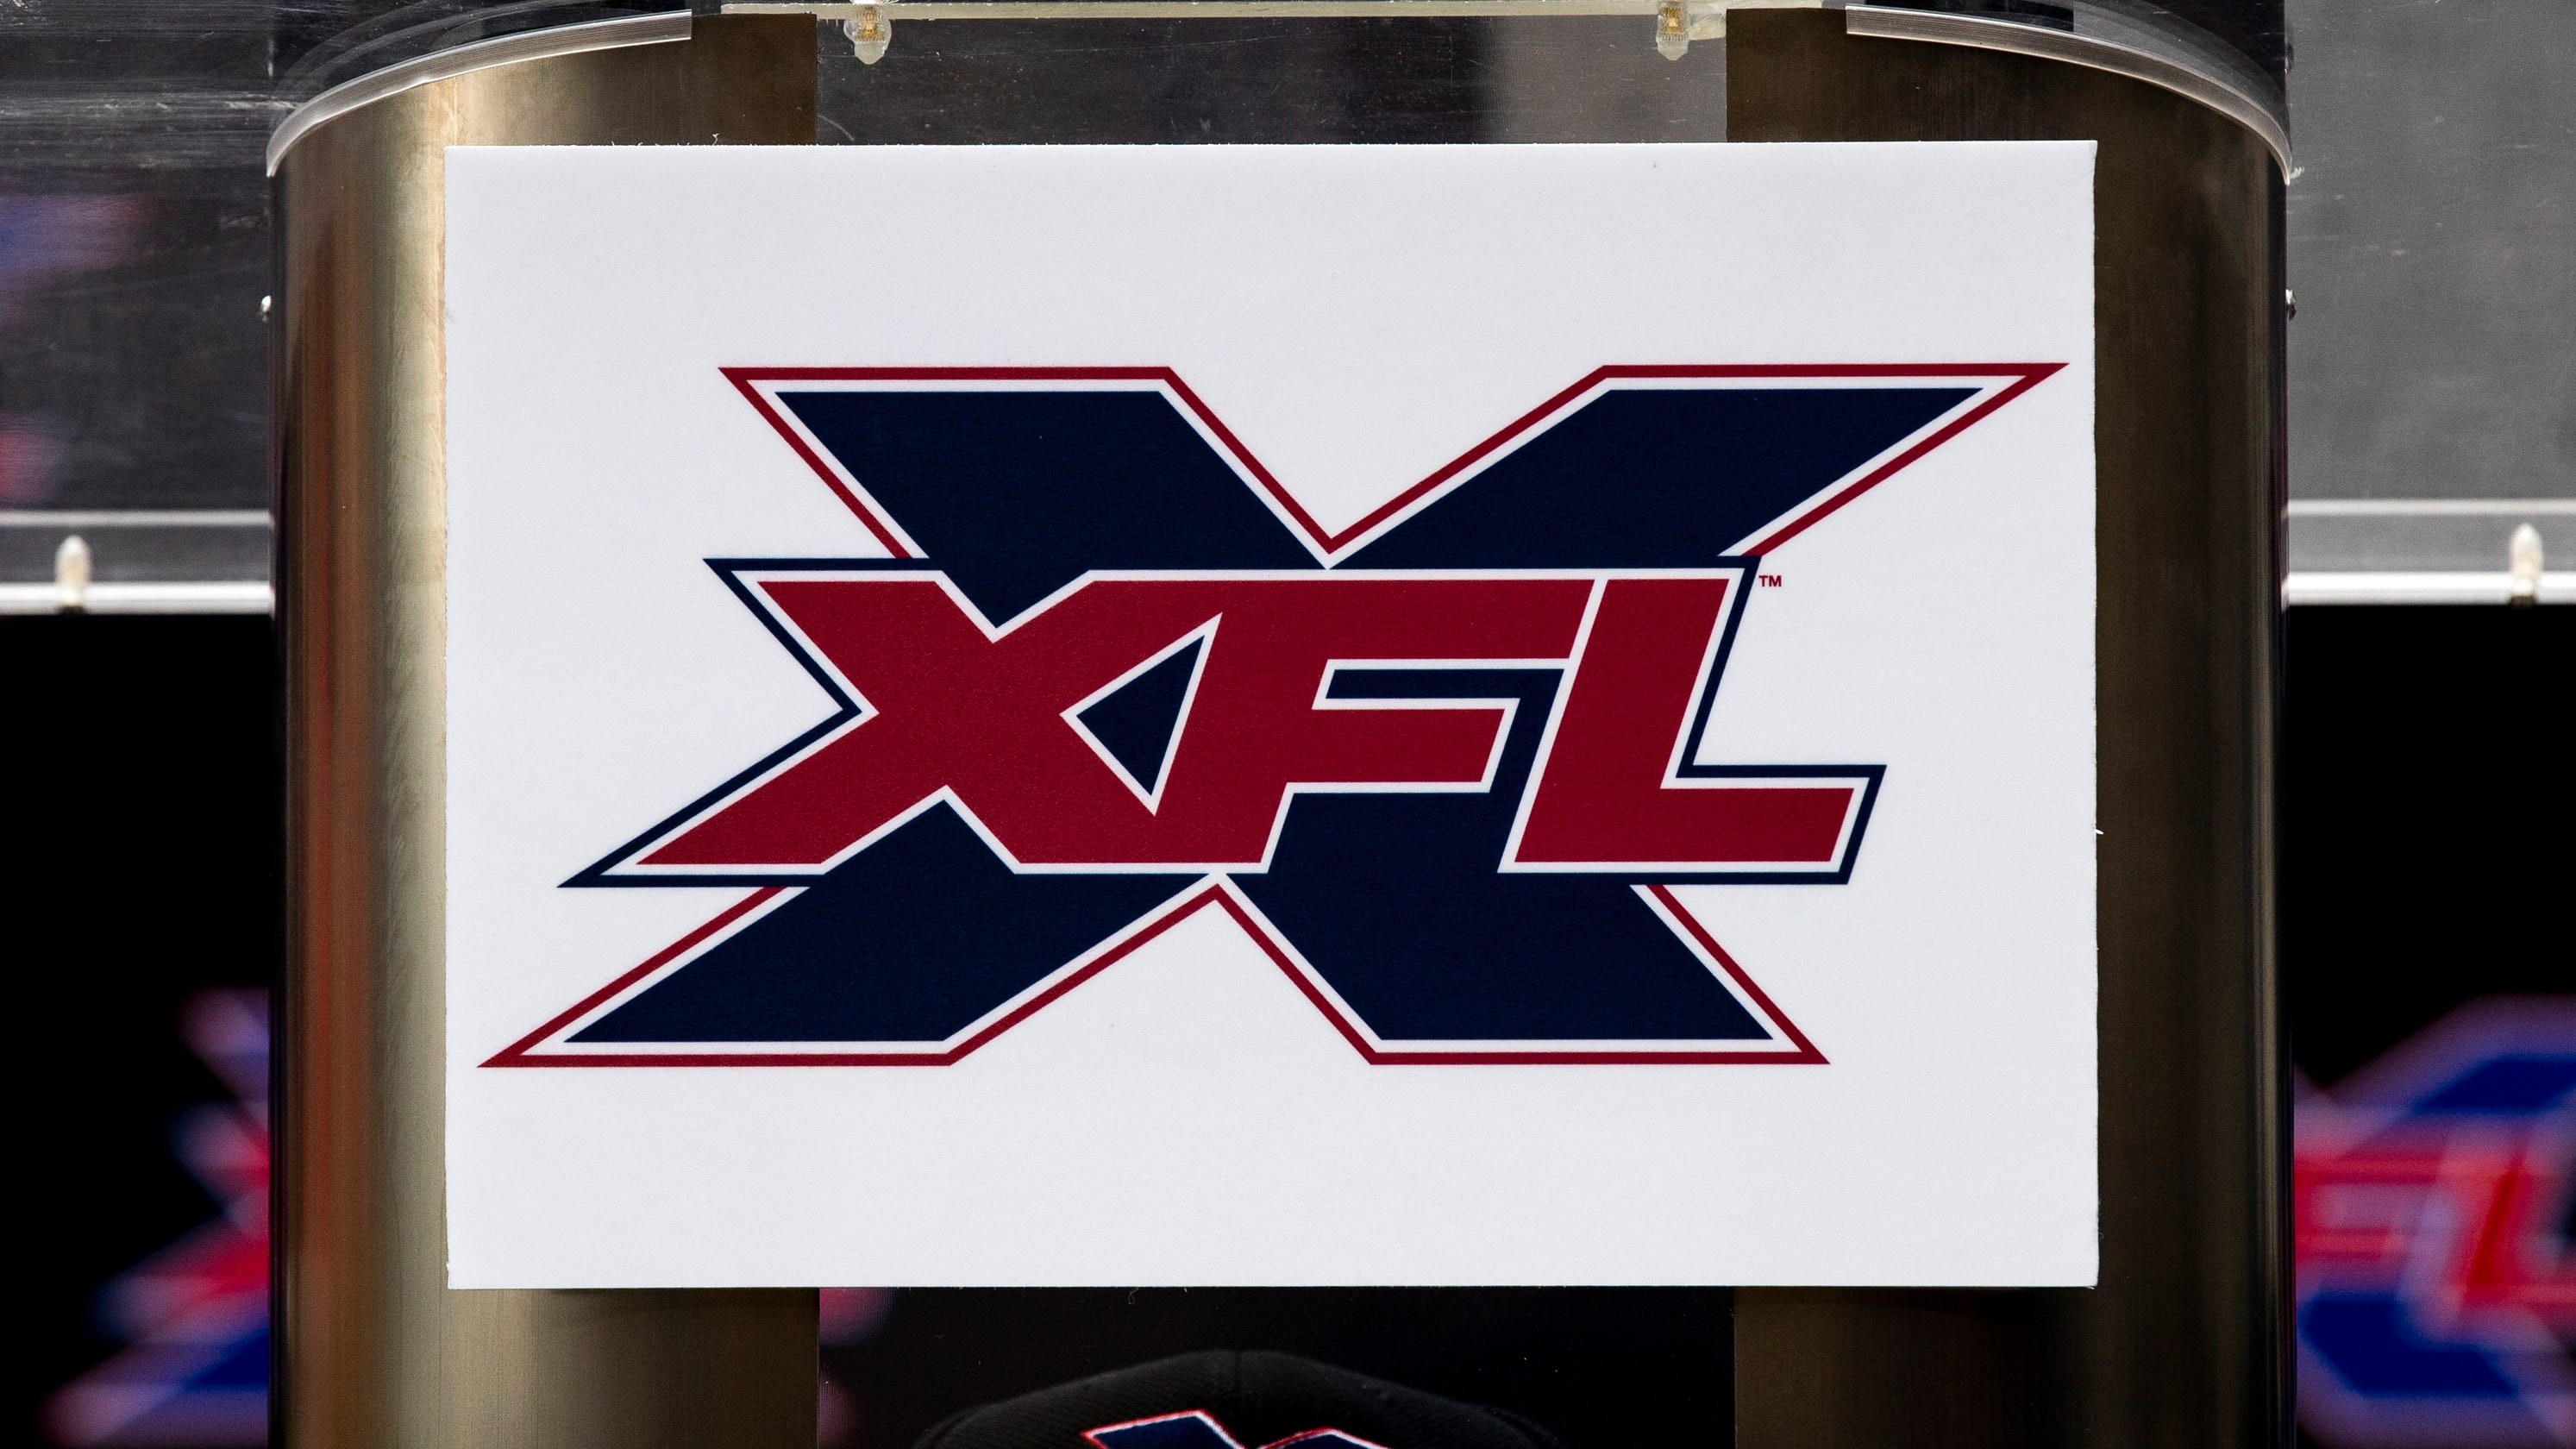 XFL draft: Players, picks, order, format, latest updates on teams